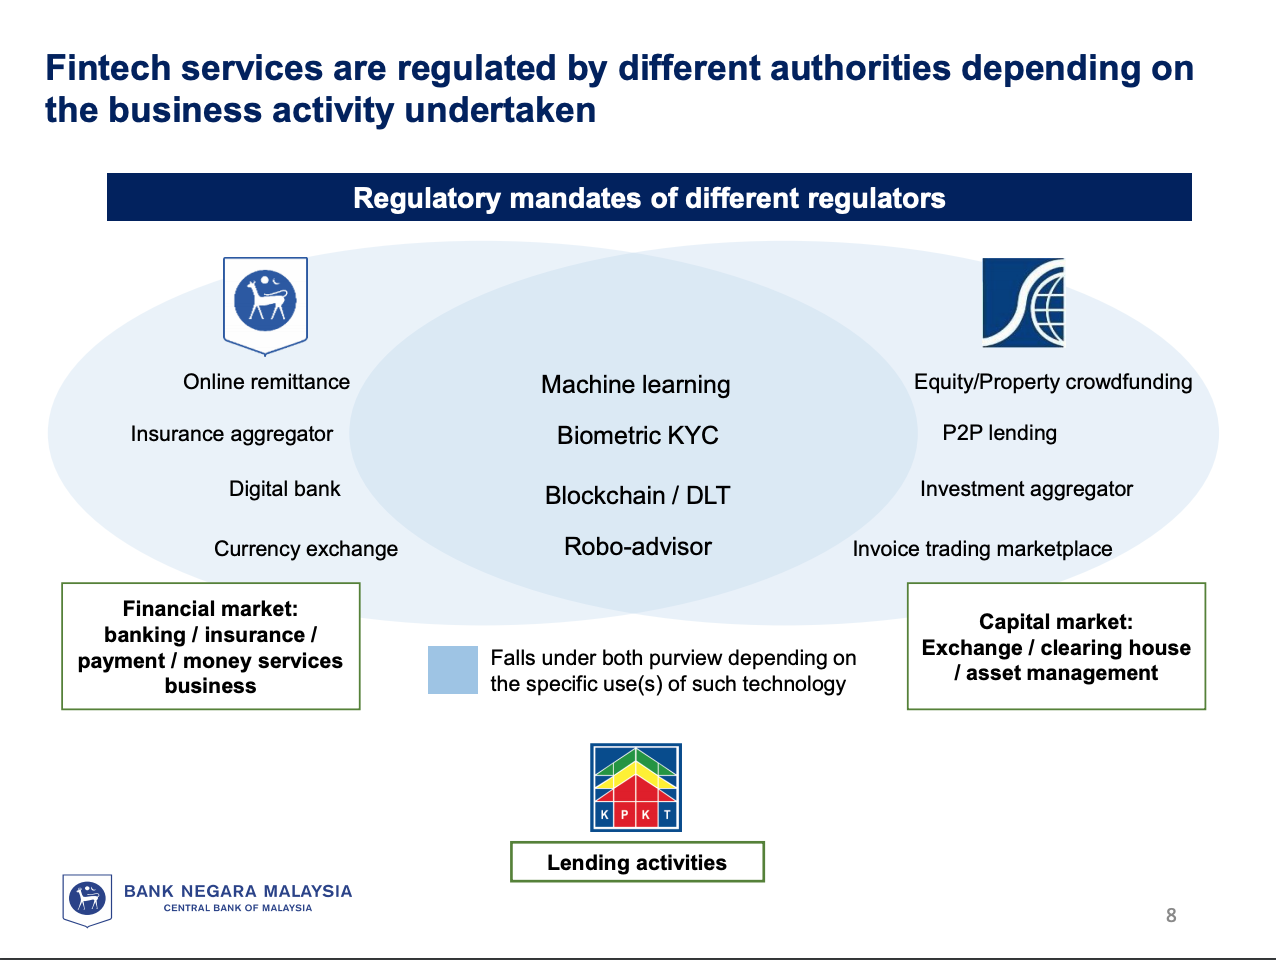 Fintech Regulation Malaysia: Fintech services are regulated by different authorities depending on the business activity undertaken, BNM Presentation, Fintech Regulatory Bootcamp: Role of BNM in Facilitating Innovation, August 4, 2020